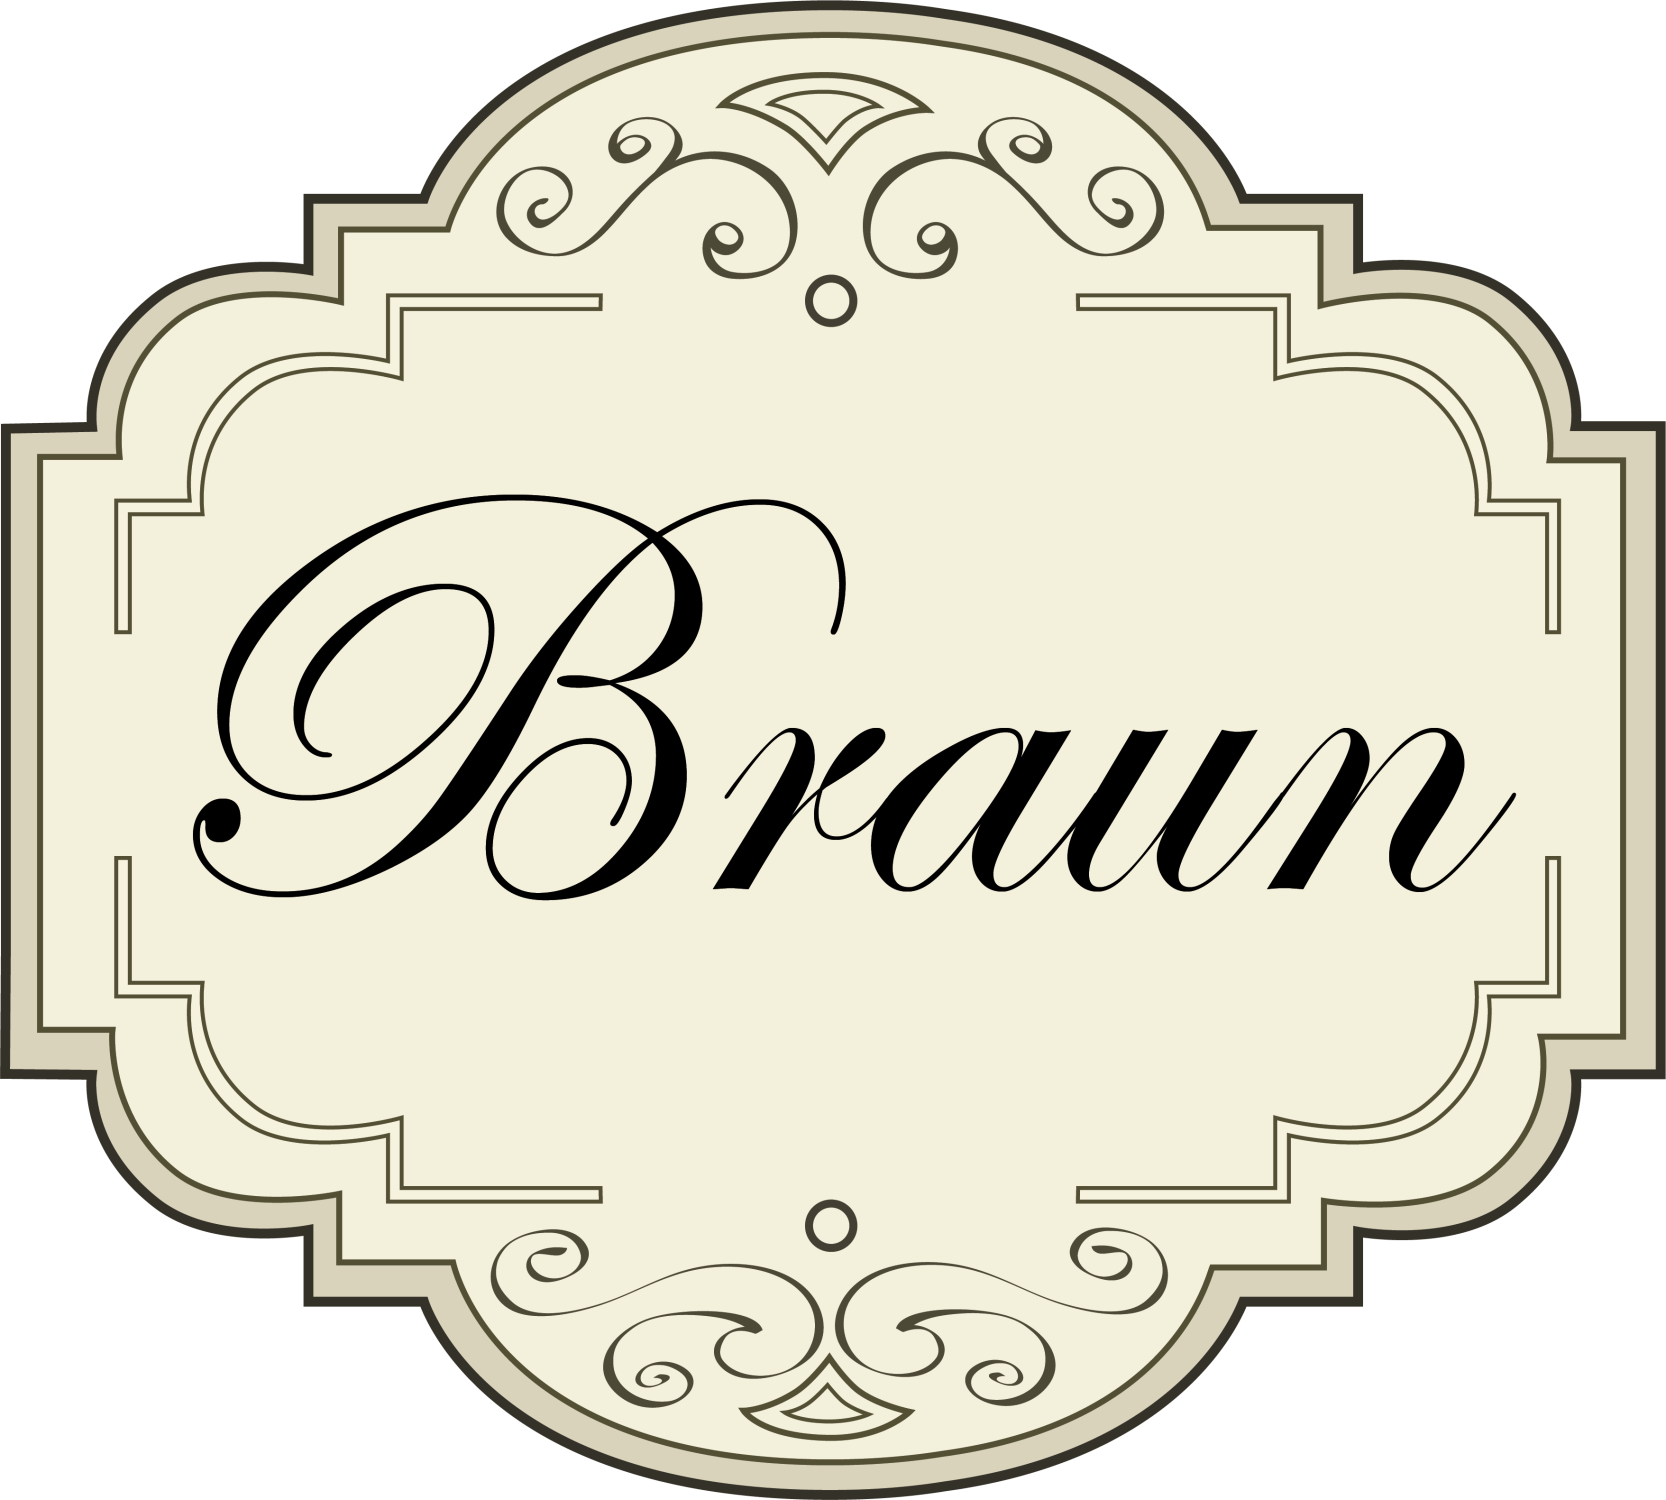 Braun Funeral Home in Eatontown, NJ